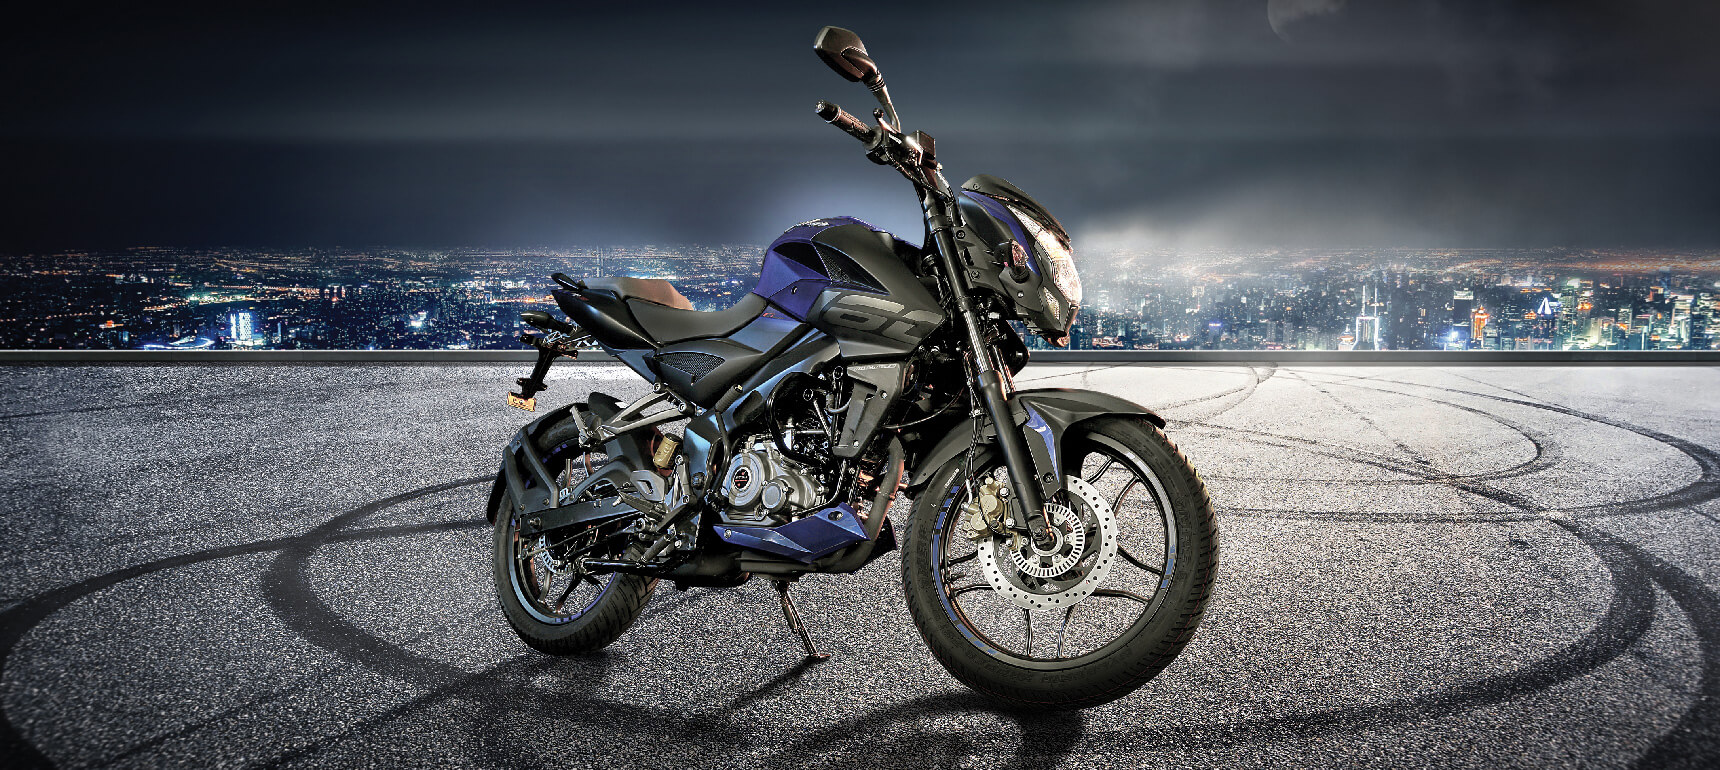 Black and Blue Color Bajaj Pusar NS 160 FI ABS Motorcycle